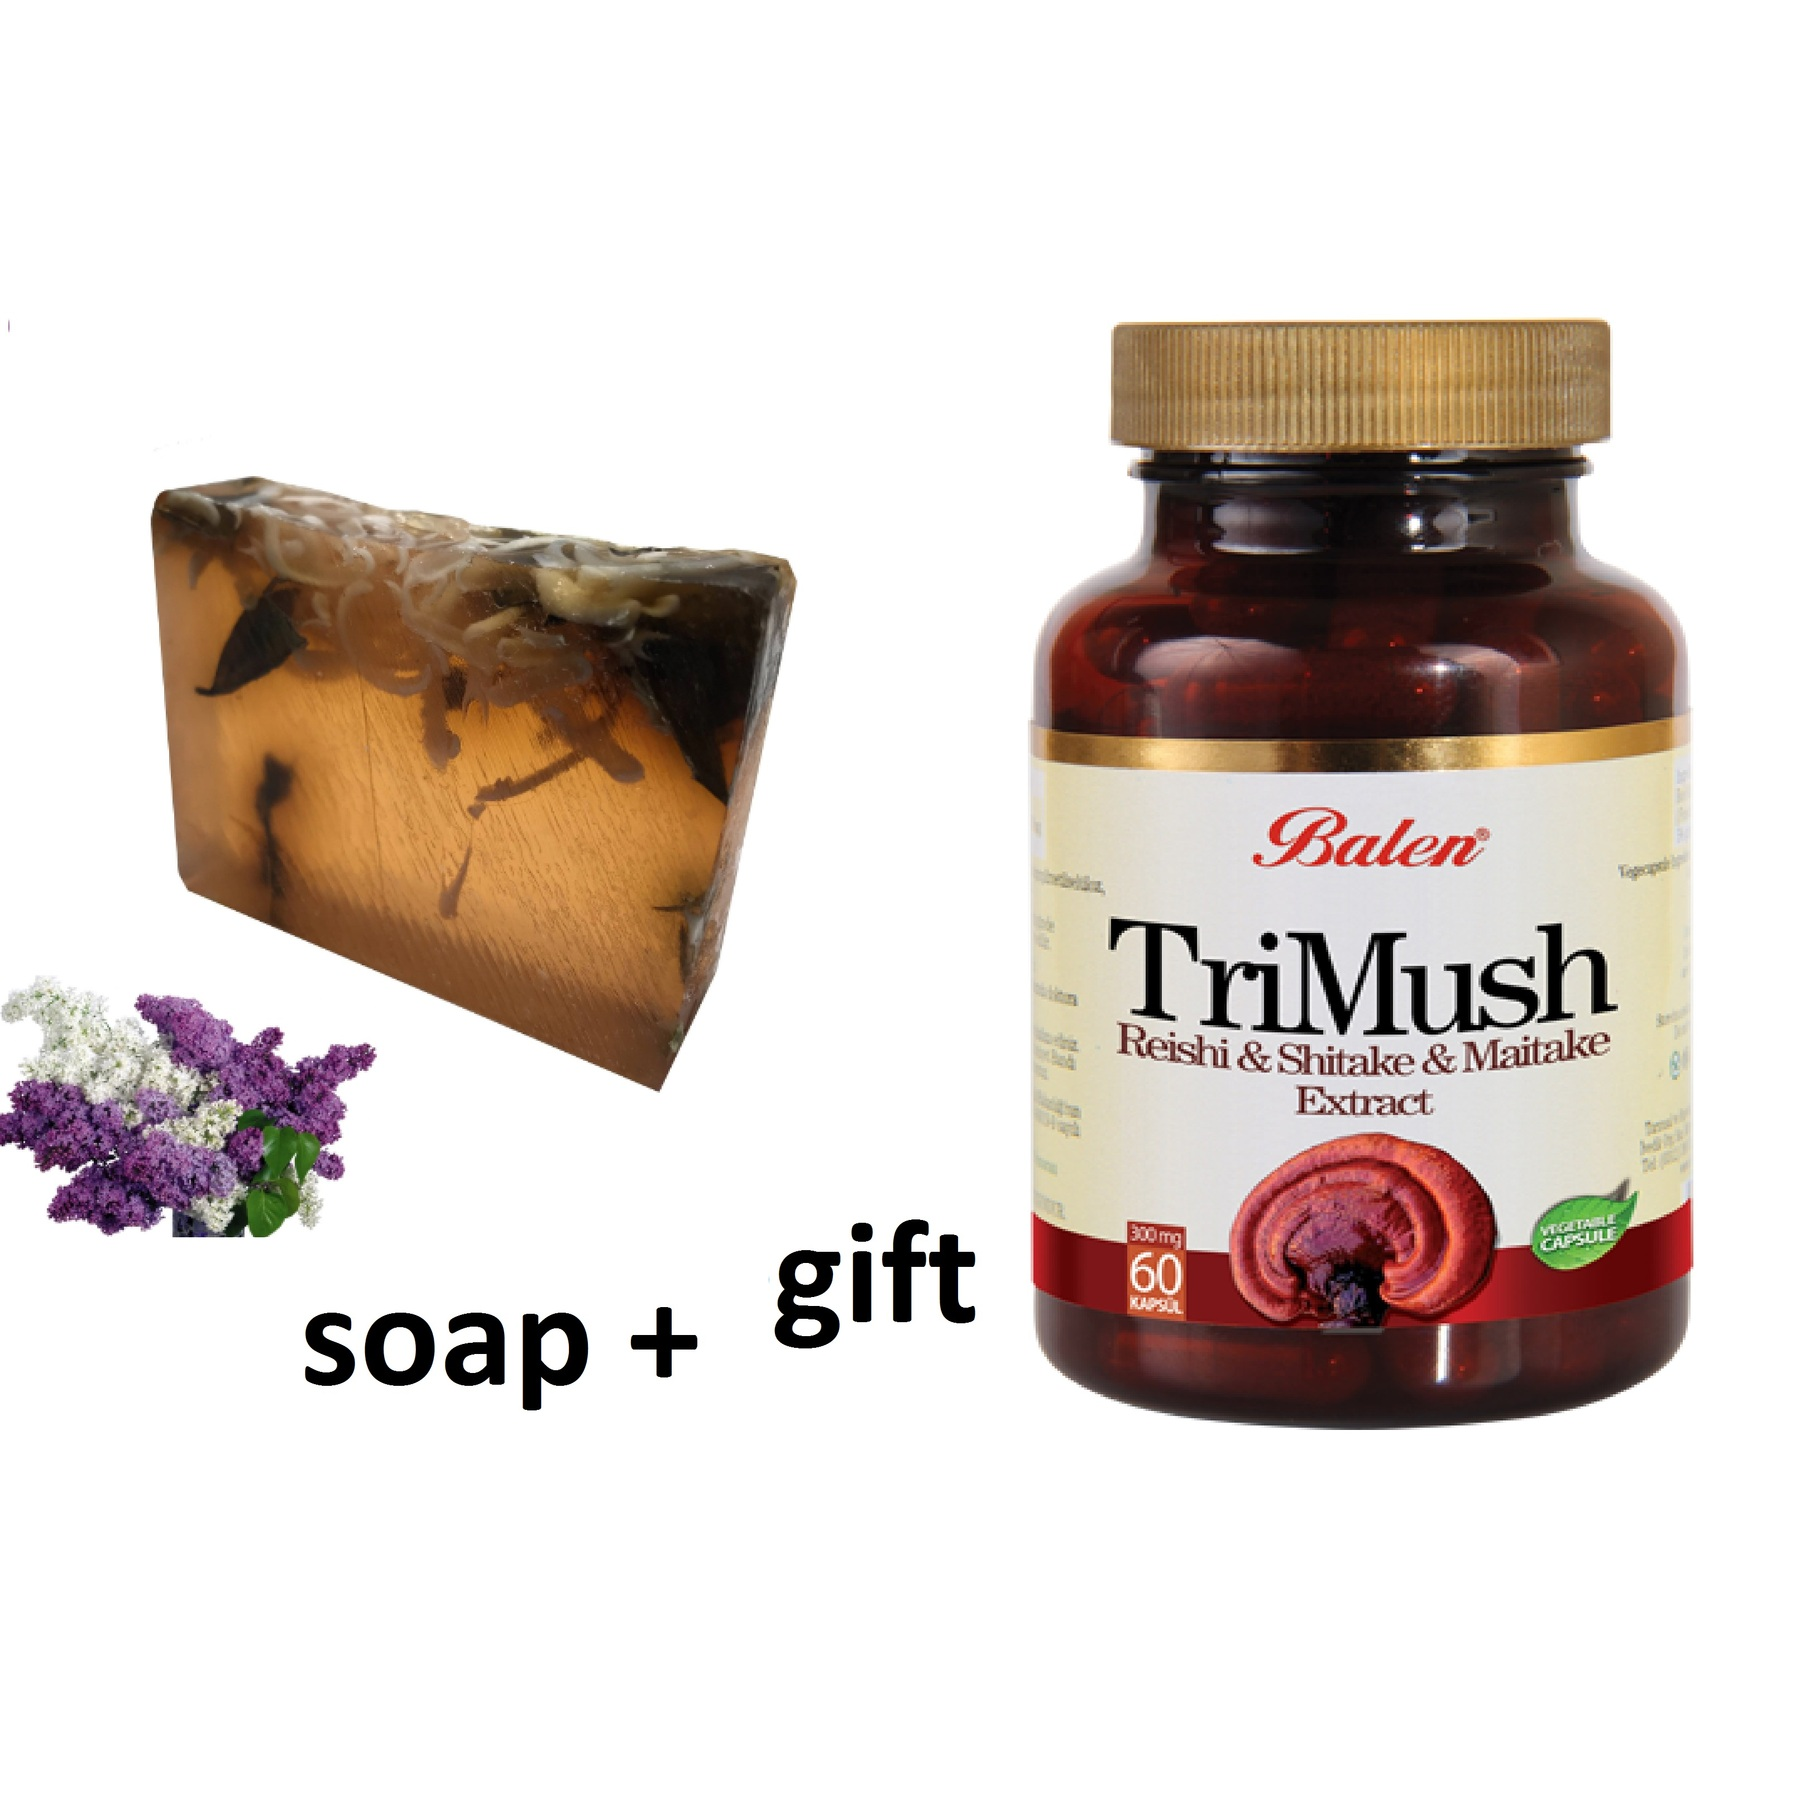 (gift Items)HANDMADE LILAC Essential Oil 100gr Soap+Gift Food Supplement Reishi Shiitake Maytake Mushroom Extract S